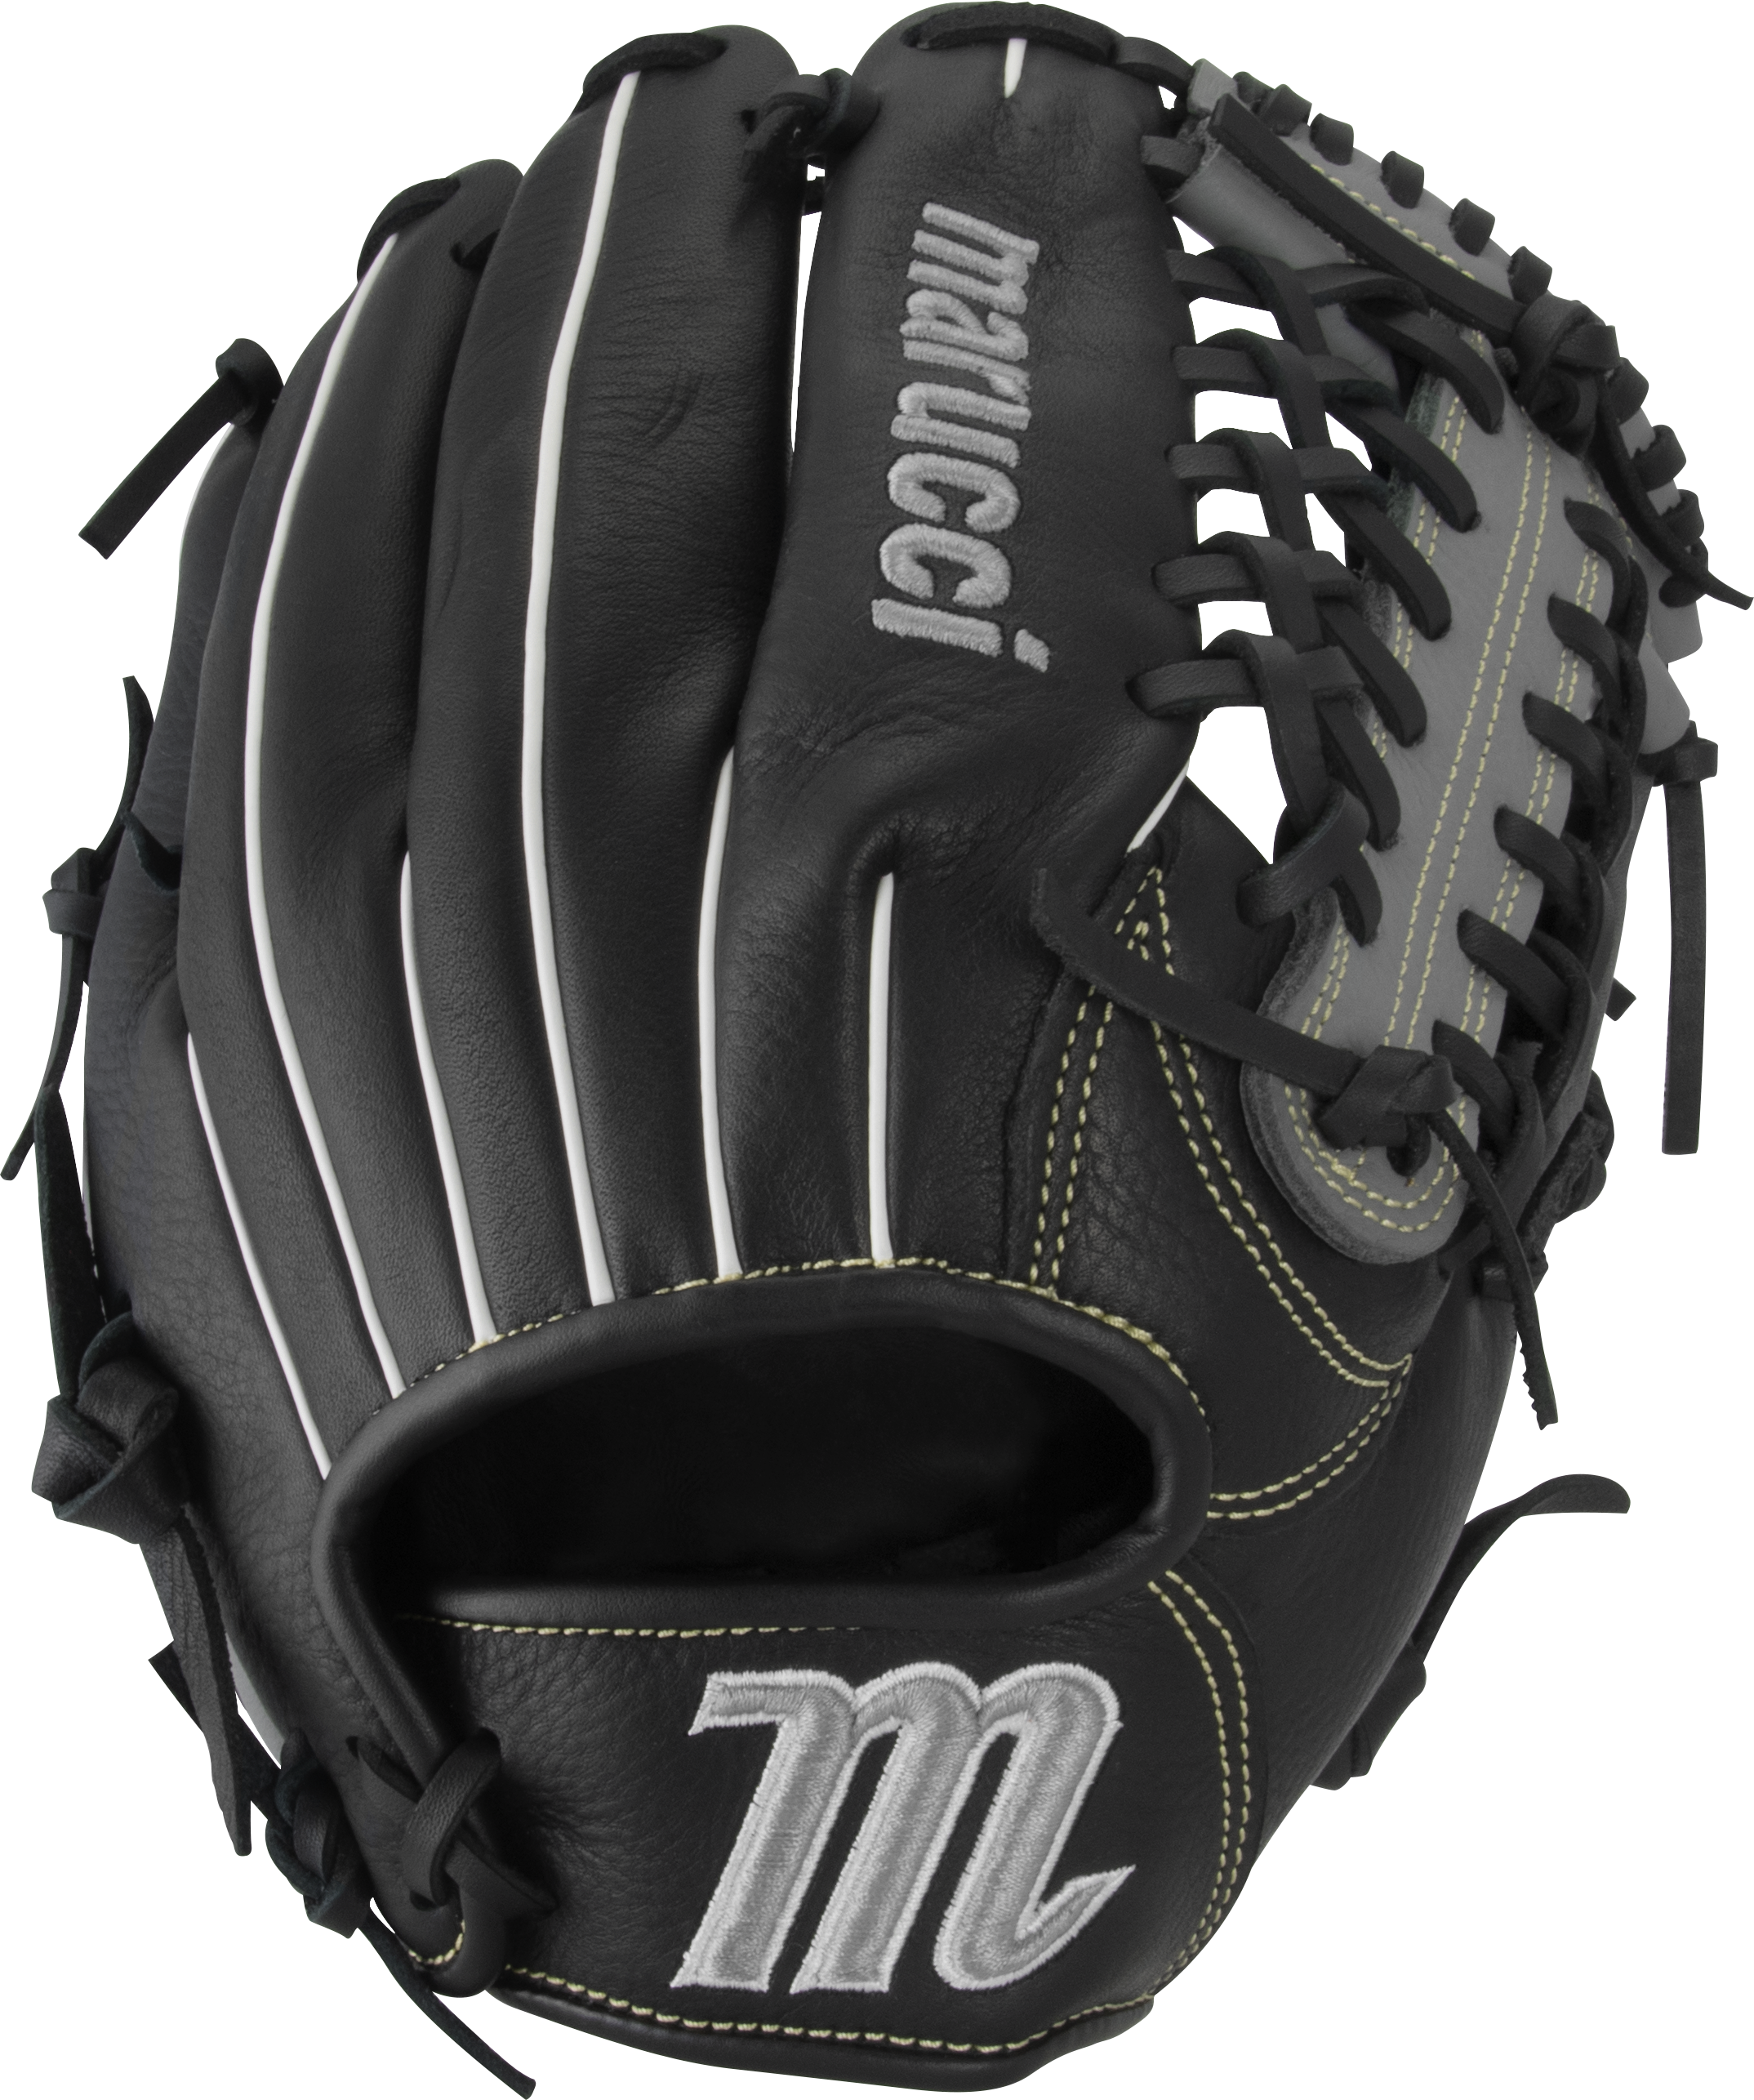 marucci-oxbow-ox1175-baseball-glove-11-75-trap-web-right-hand-throw MFGOX1175-BKGY-RightHandThrow Marucci 849817099476 Full-grain cowhide leather shell Supple leather palm lining with added cushioning